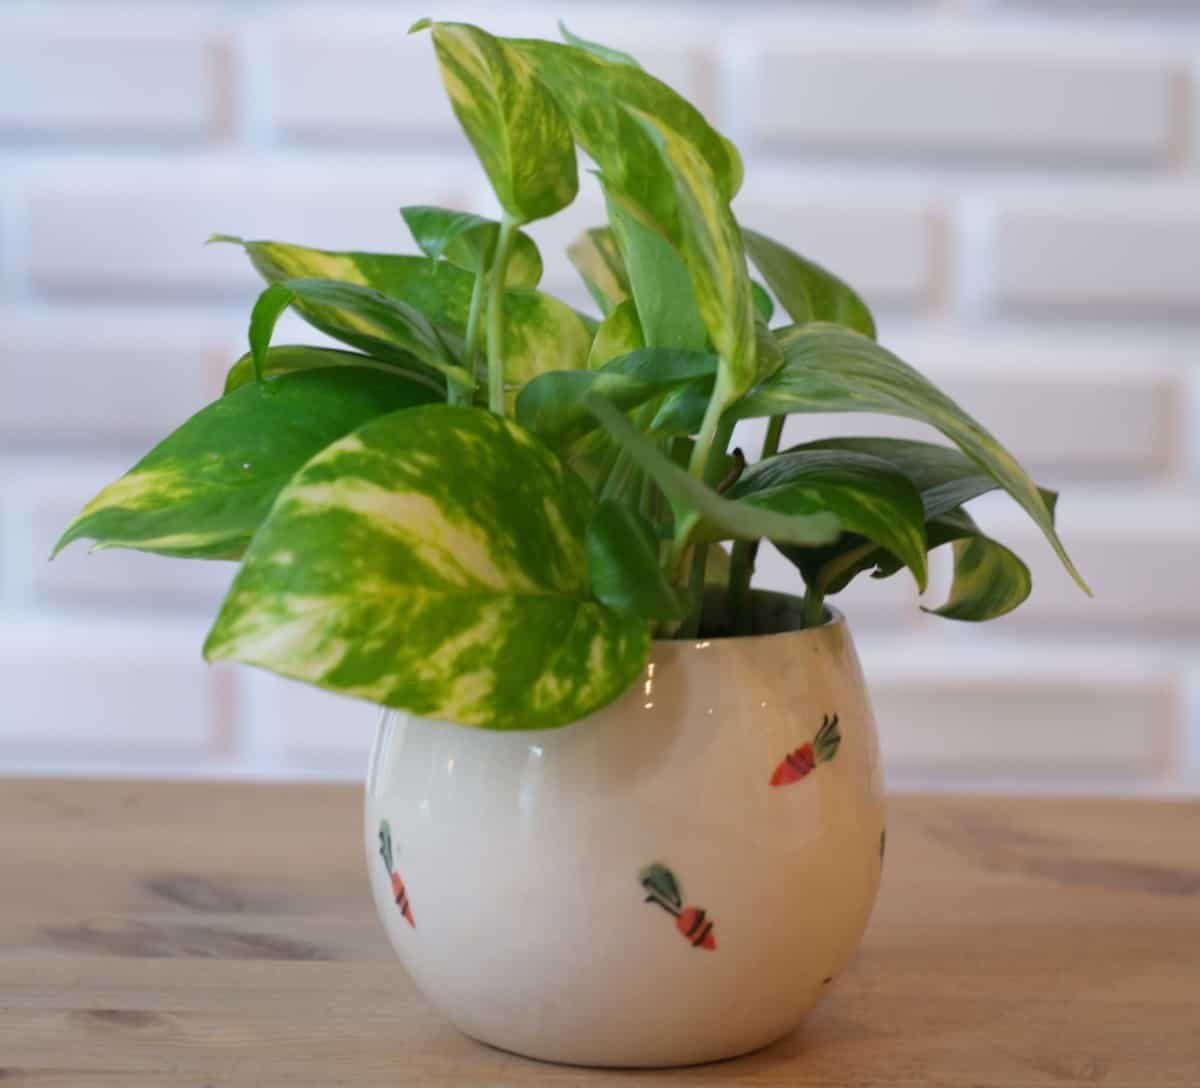 Other than being poisonous, pothos is the ideal indoor plant.